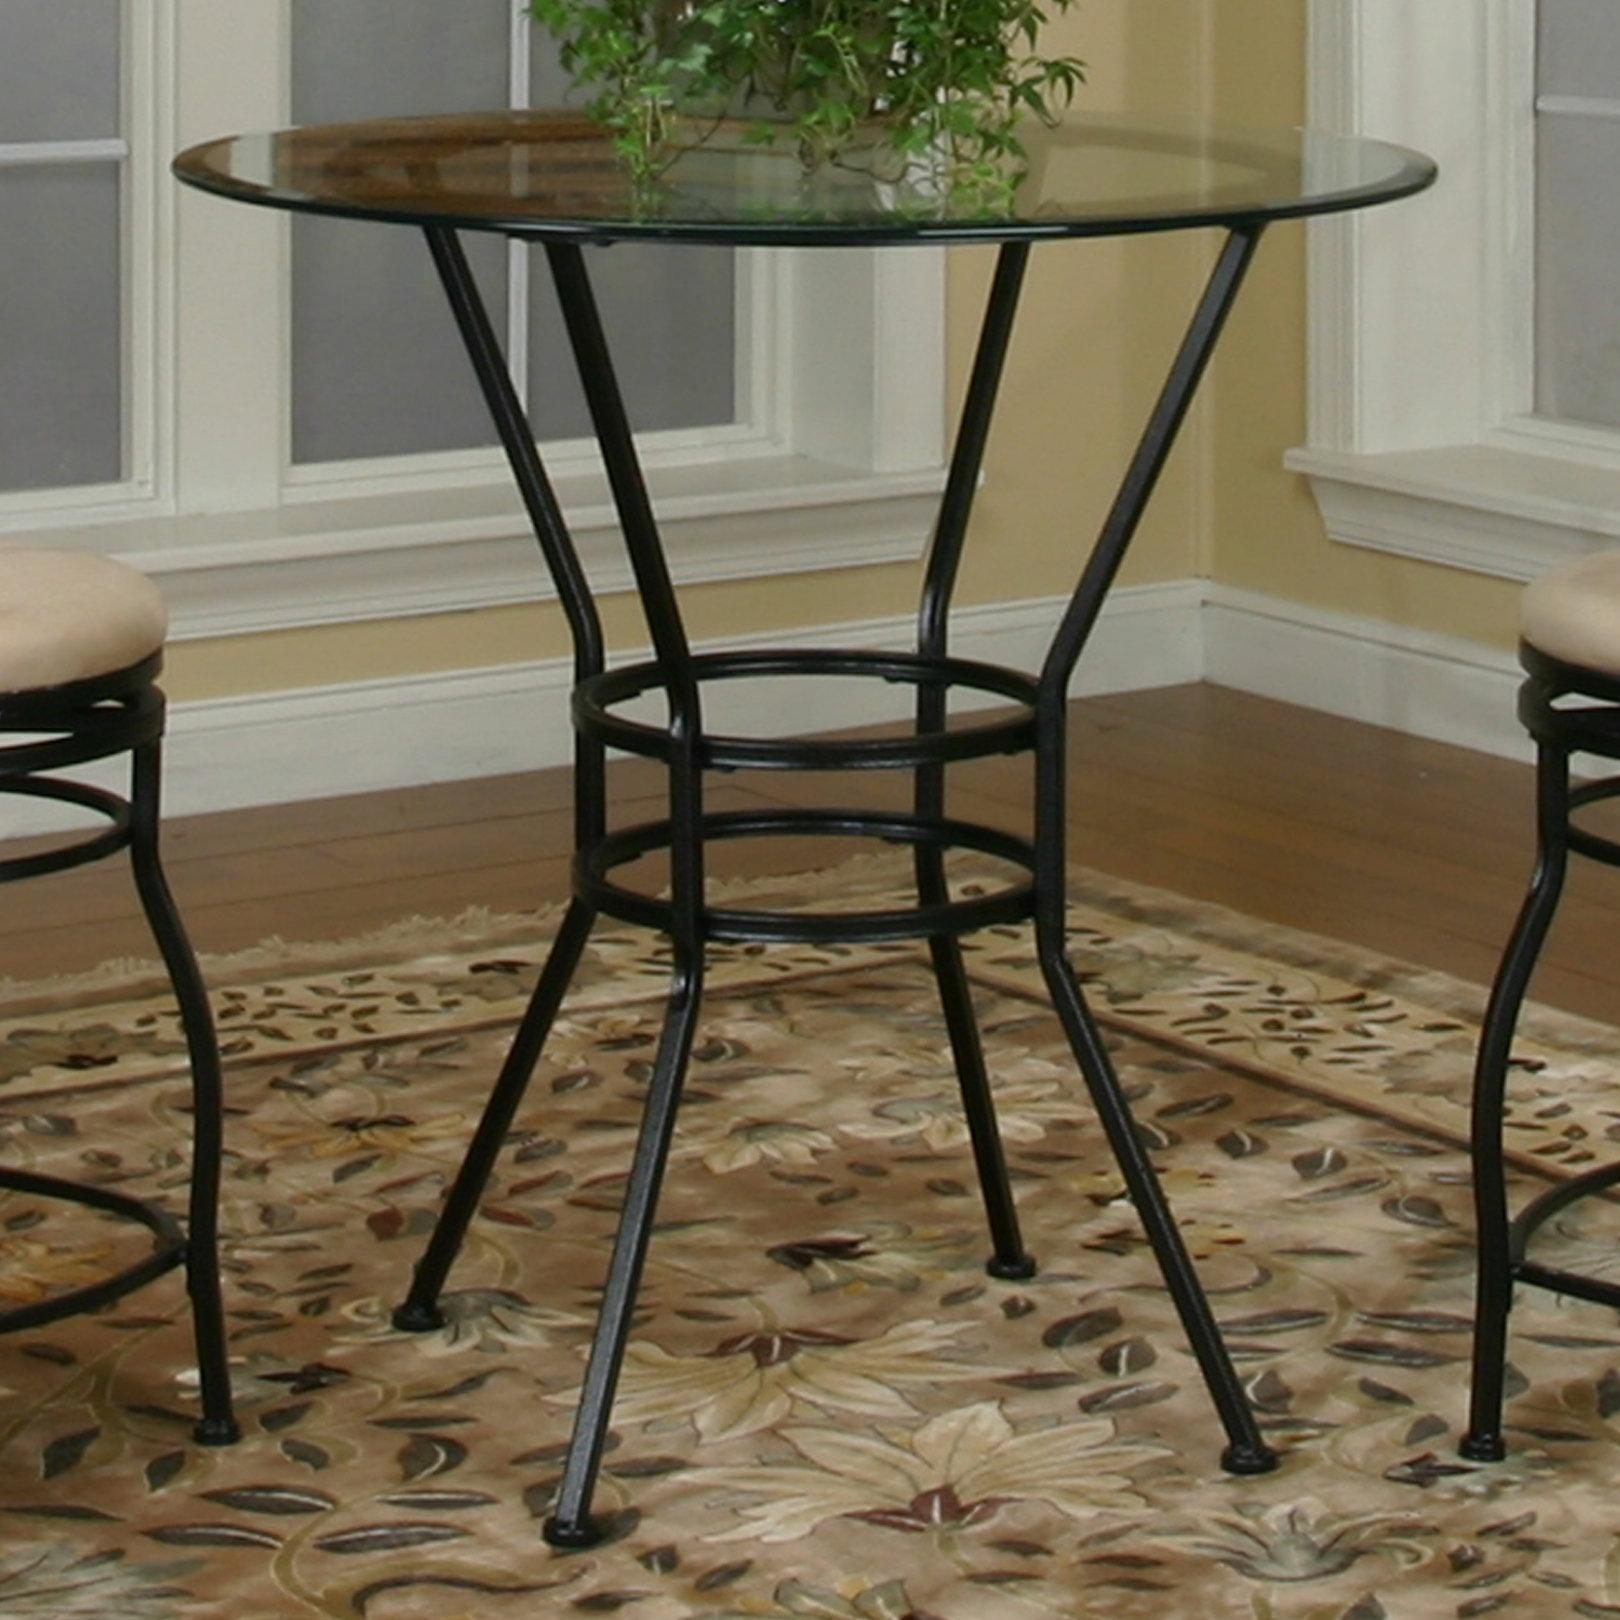 Cramco, Inc Cramco Trading Company - Starling Round Glass Pub Table - Item Number: 72688-49+43